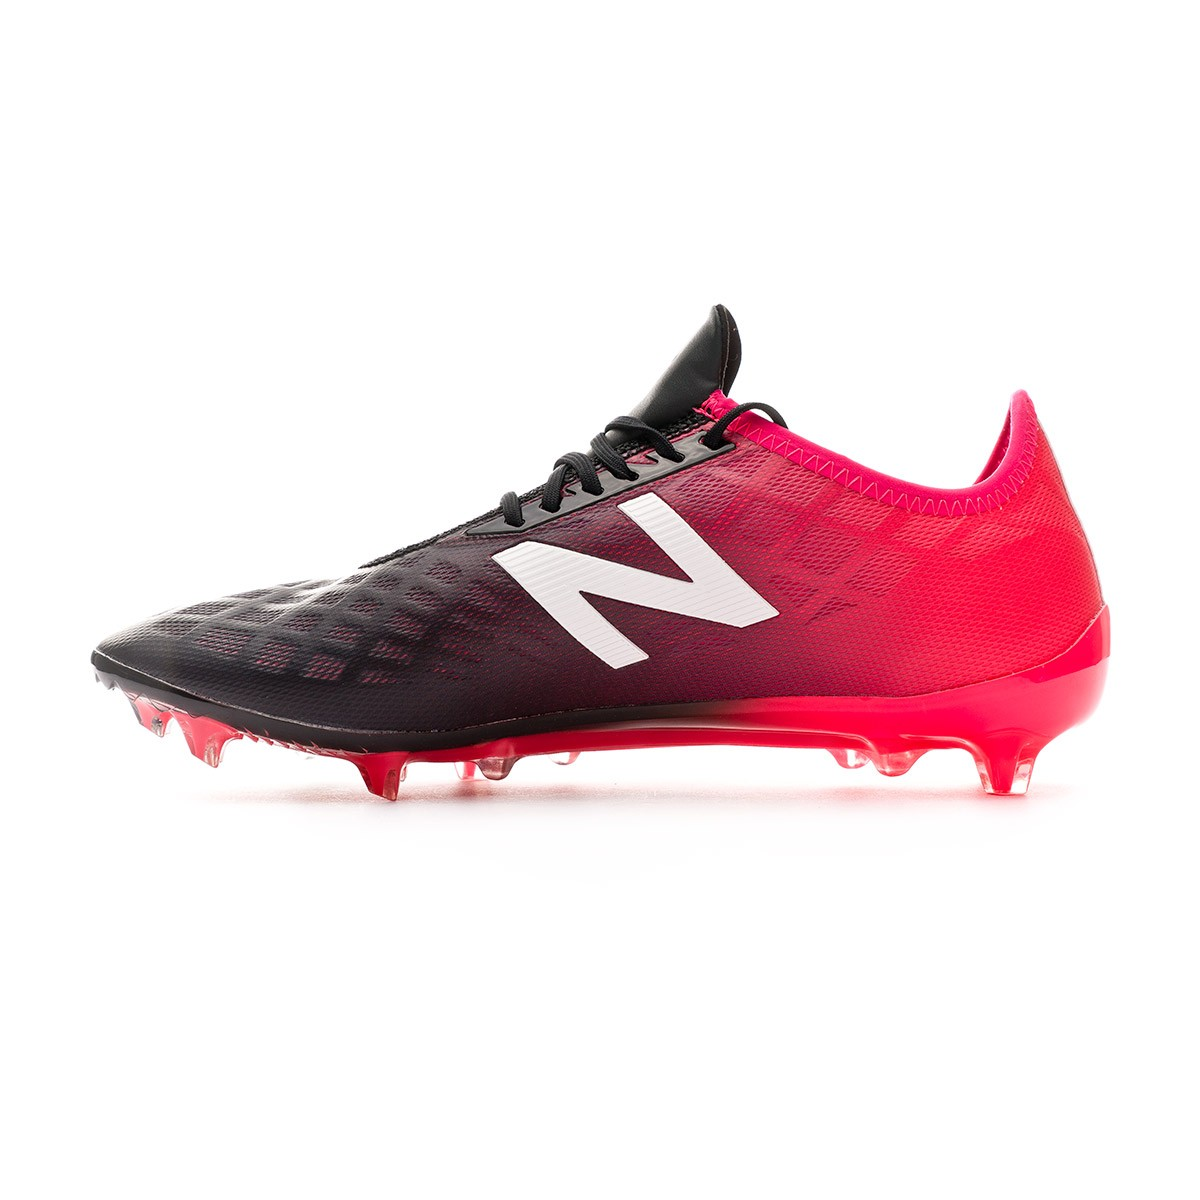 2bc4ed16a2 Scarpe New Balance Furon 4.0 Pro FG Bright cherry - Negozio di calcio  Fútbol Emotion